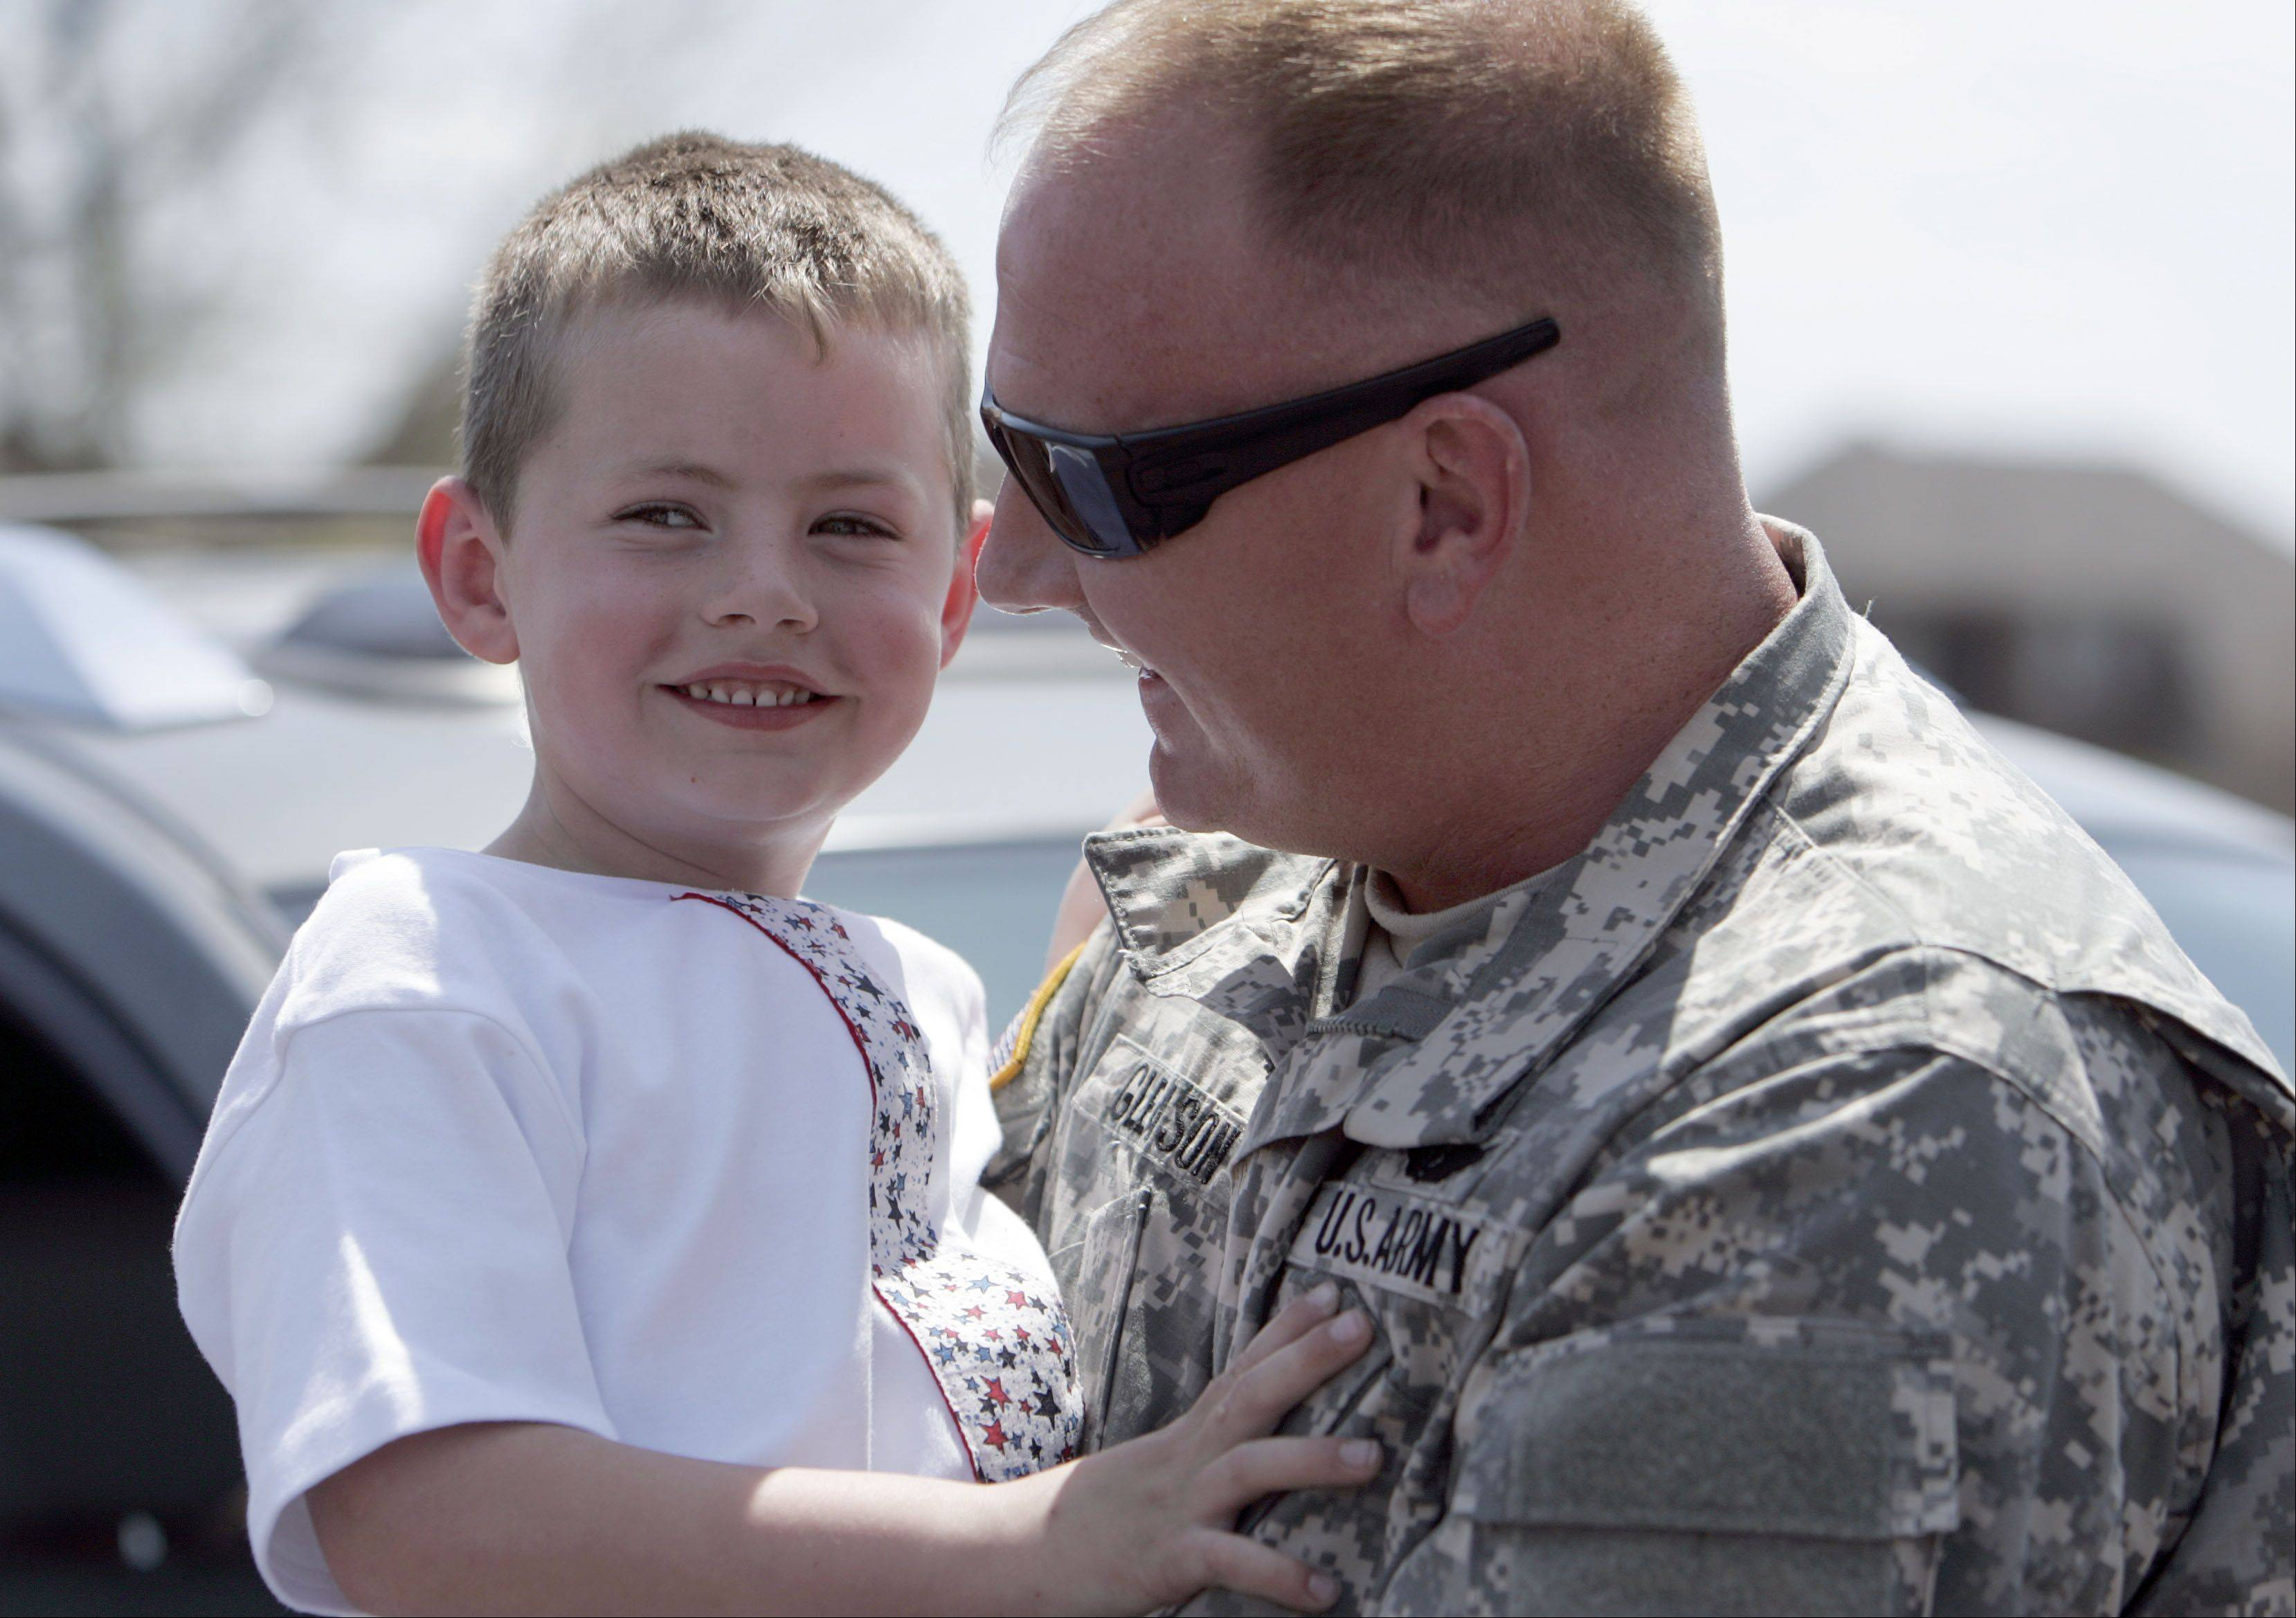 T.J. Gleason, 5, enjoys a moment with his dad, Sgt. 1st Class Tim Gleason, Wednesday at Corron Elementary School in South Elgin. Gleason returned home Wednesday from his second deployment to Kuwait.